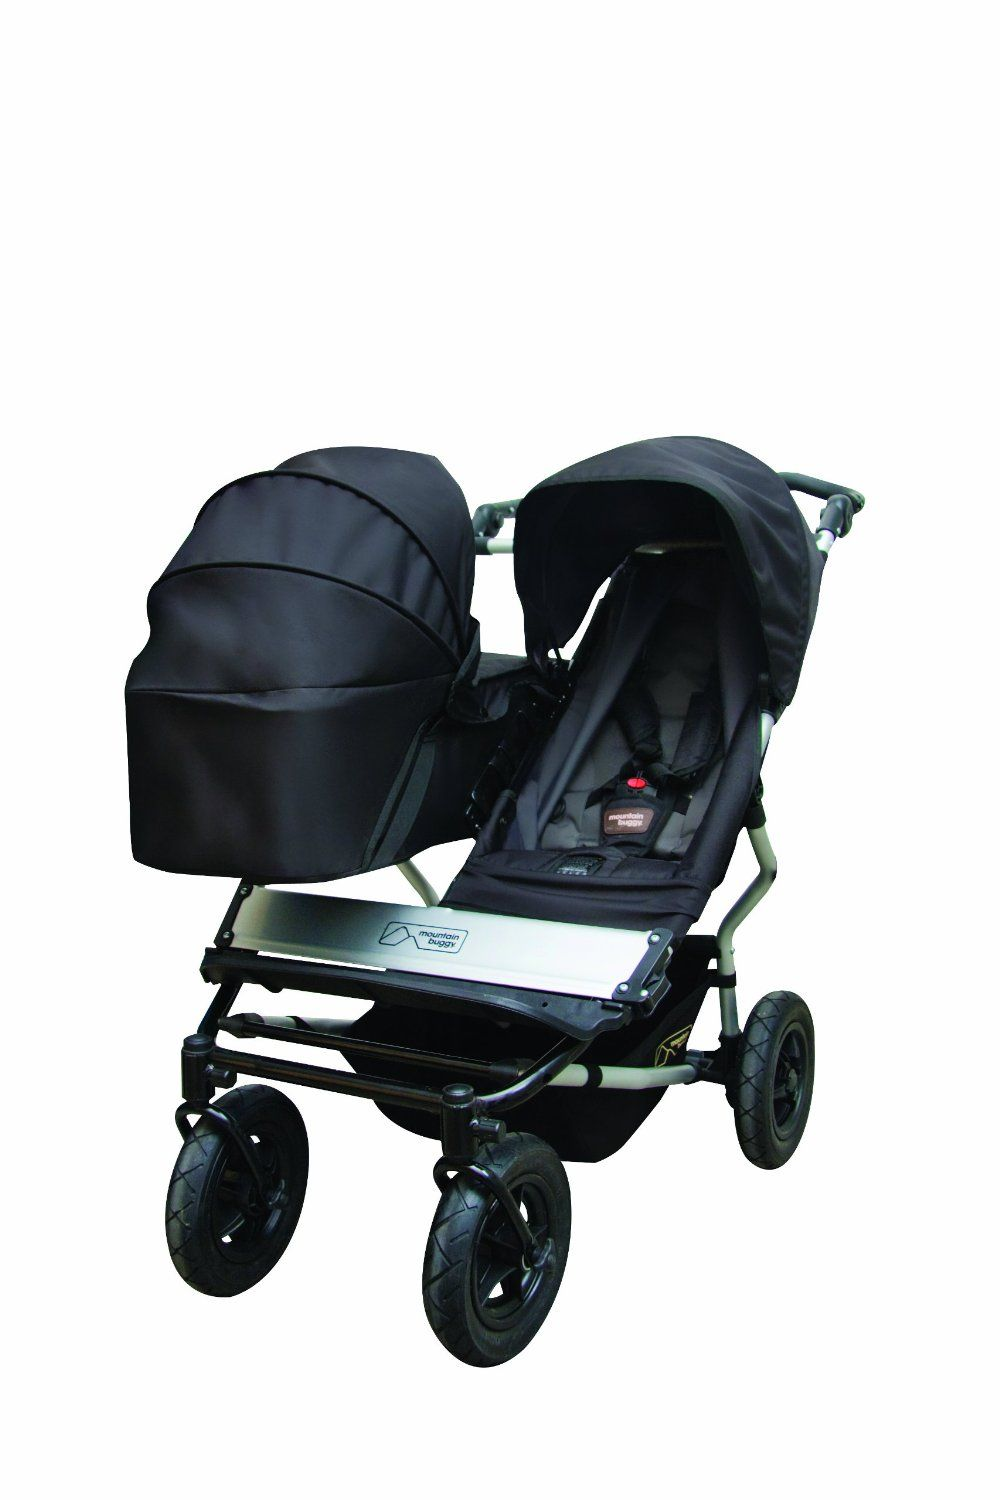 Car Seat For Double Stroller Amazon Mountain Buggy Duet Double Buggy Stroller